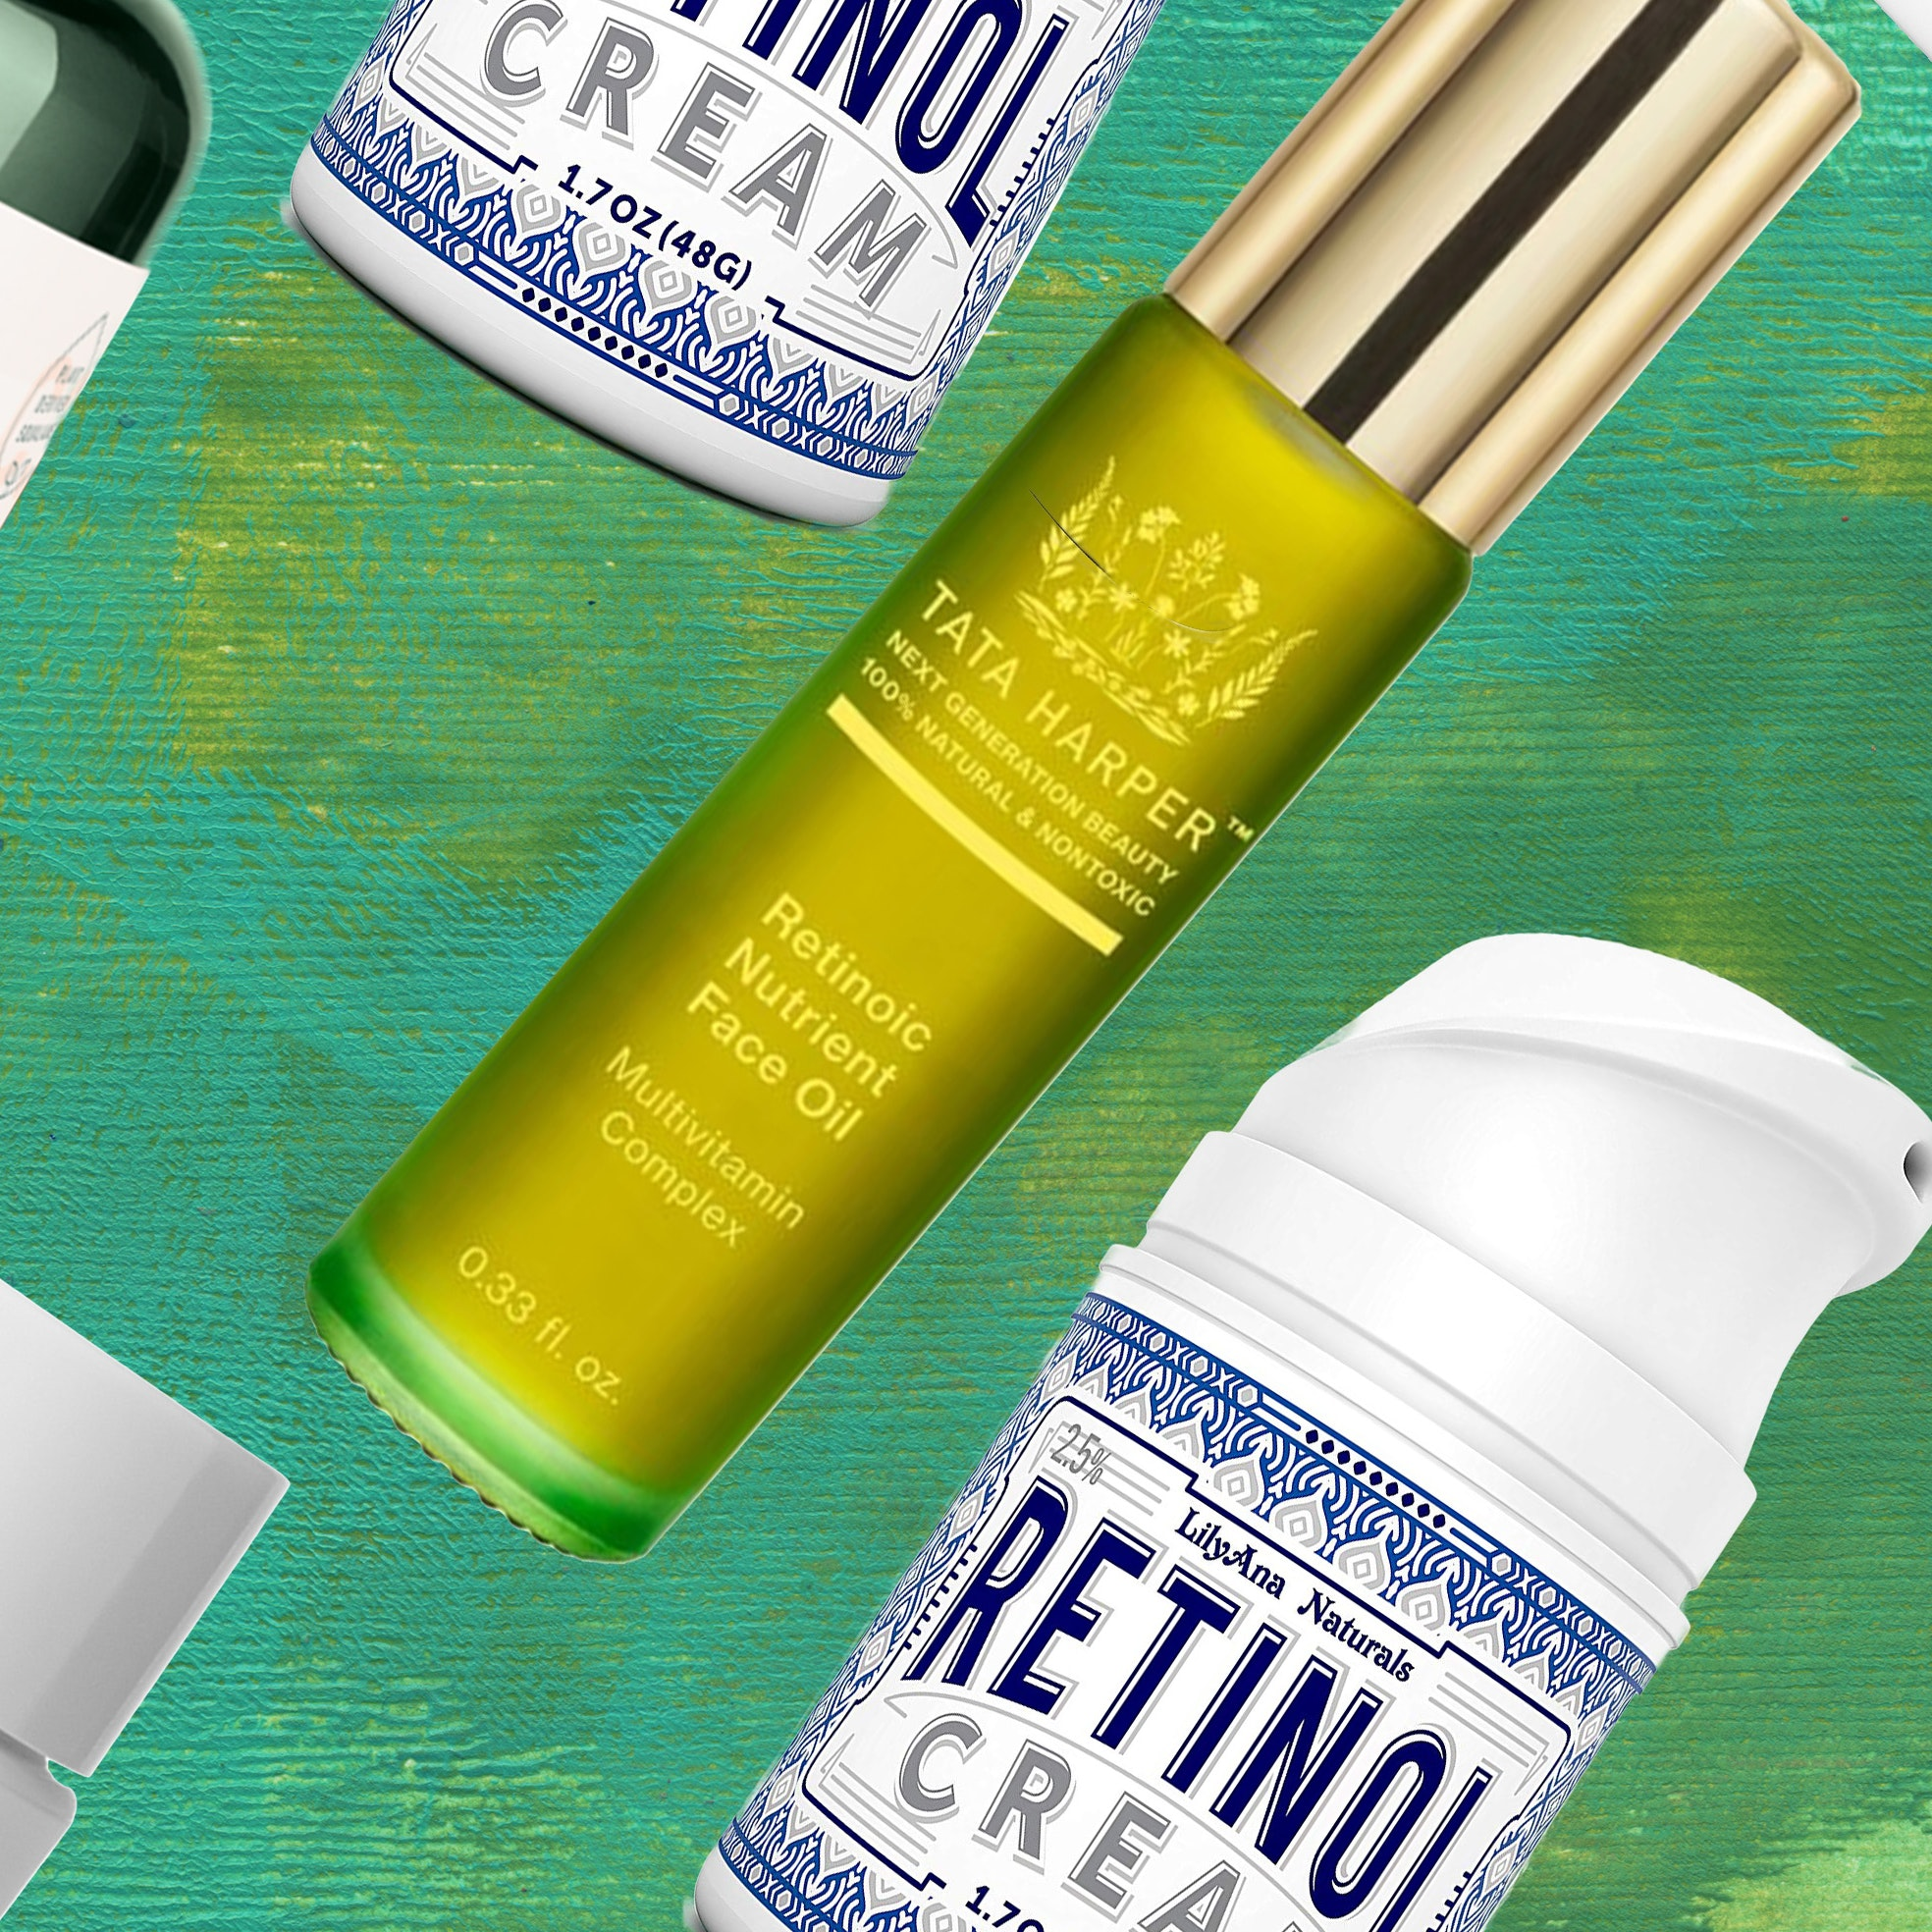 The Best Natural Retinols to Transform Your Skin, According to Dermatologists